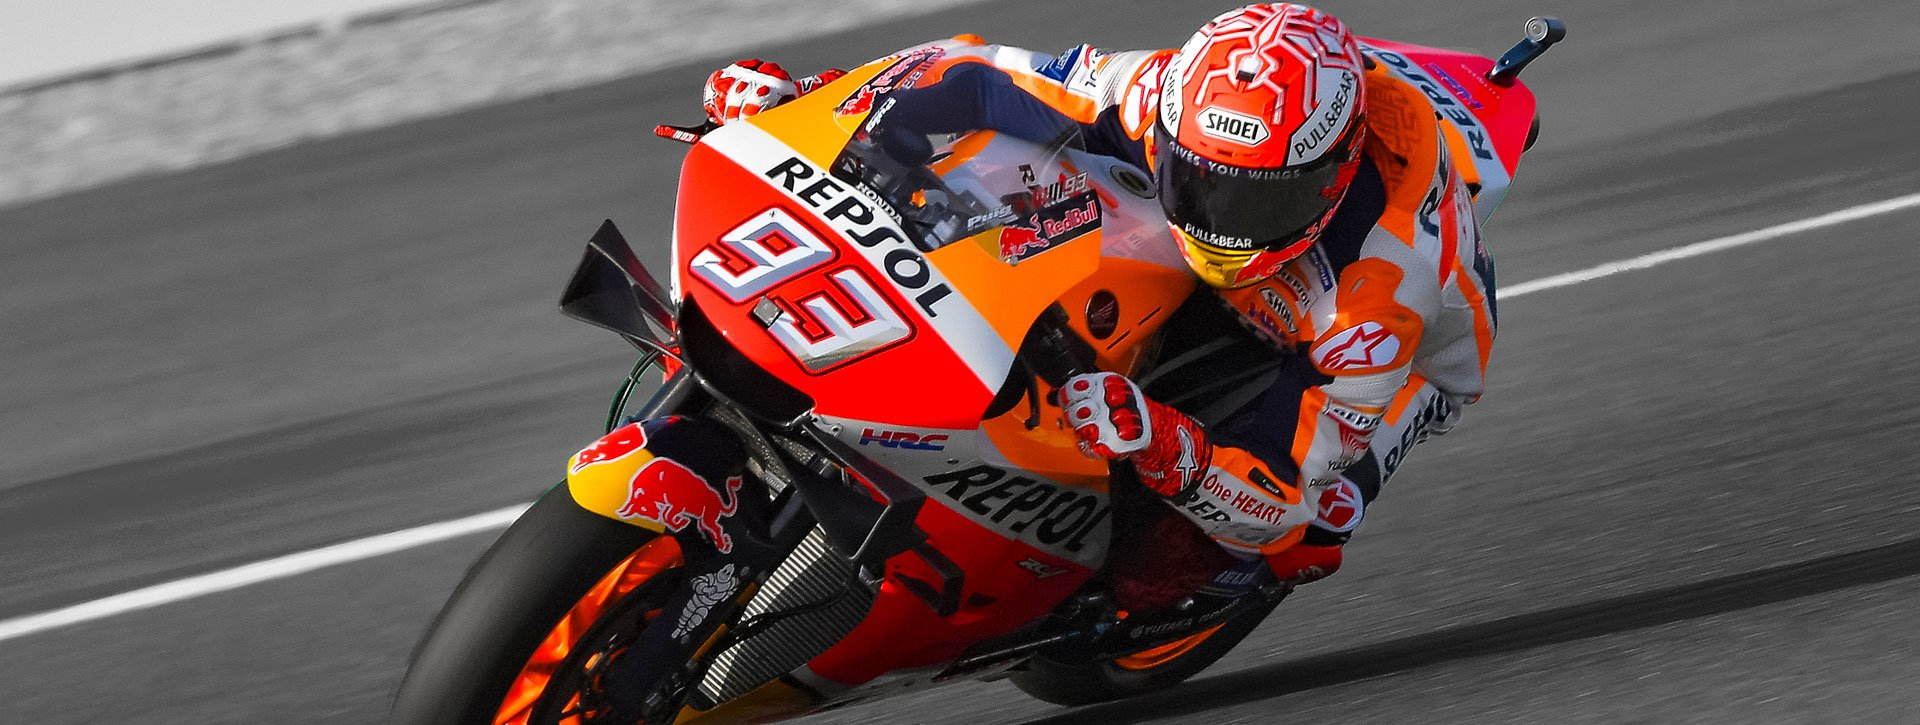 New in: Marc Marquez 93